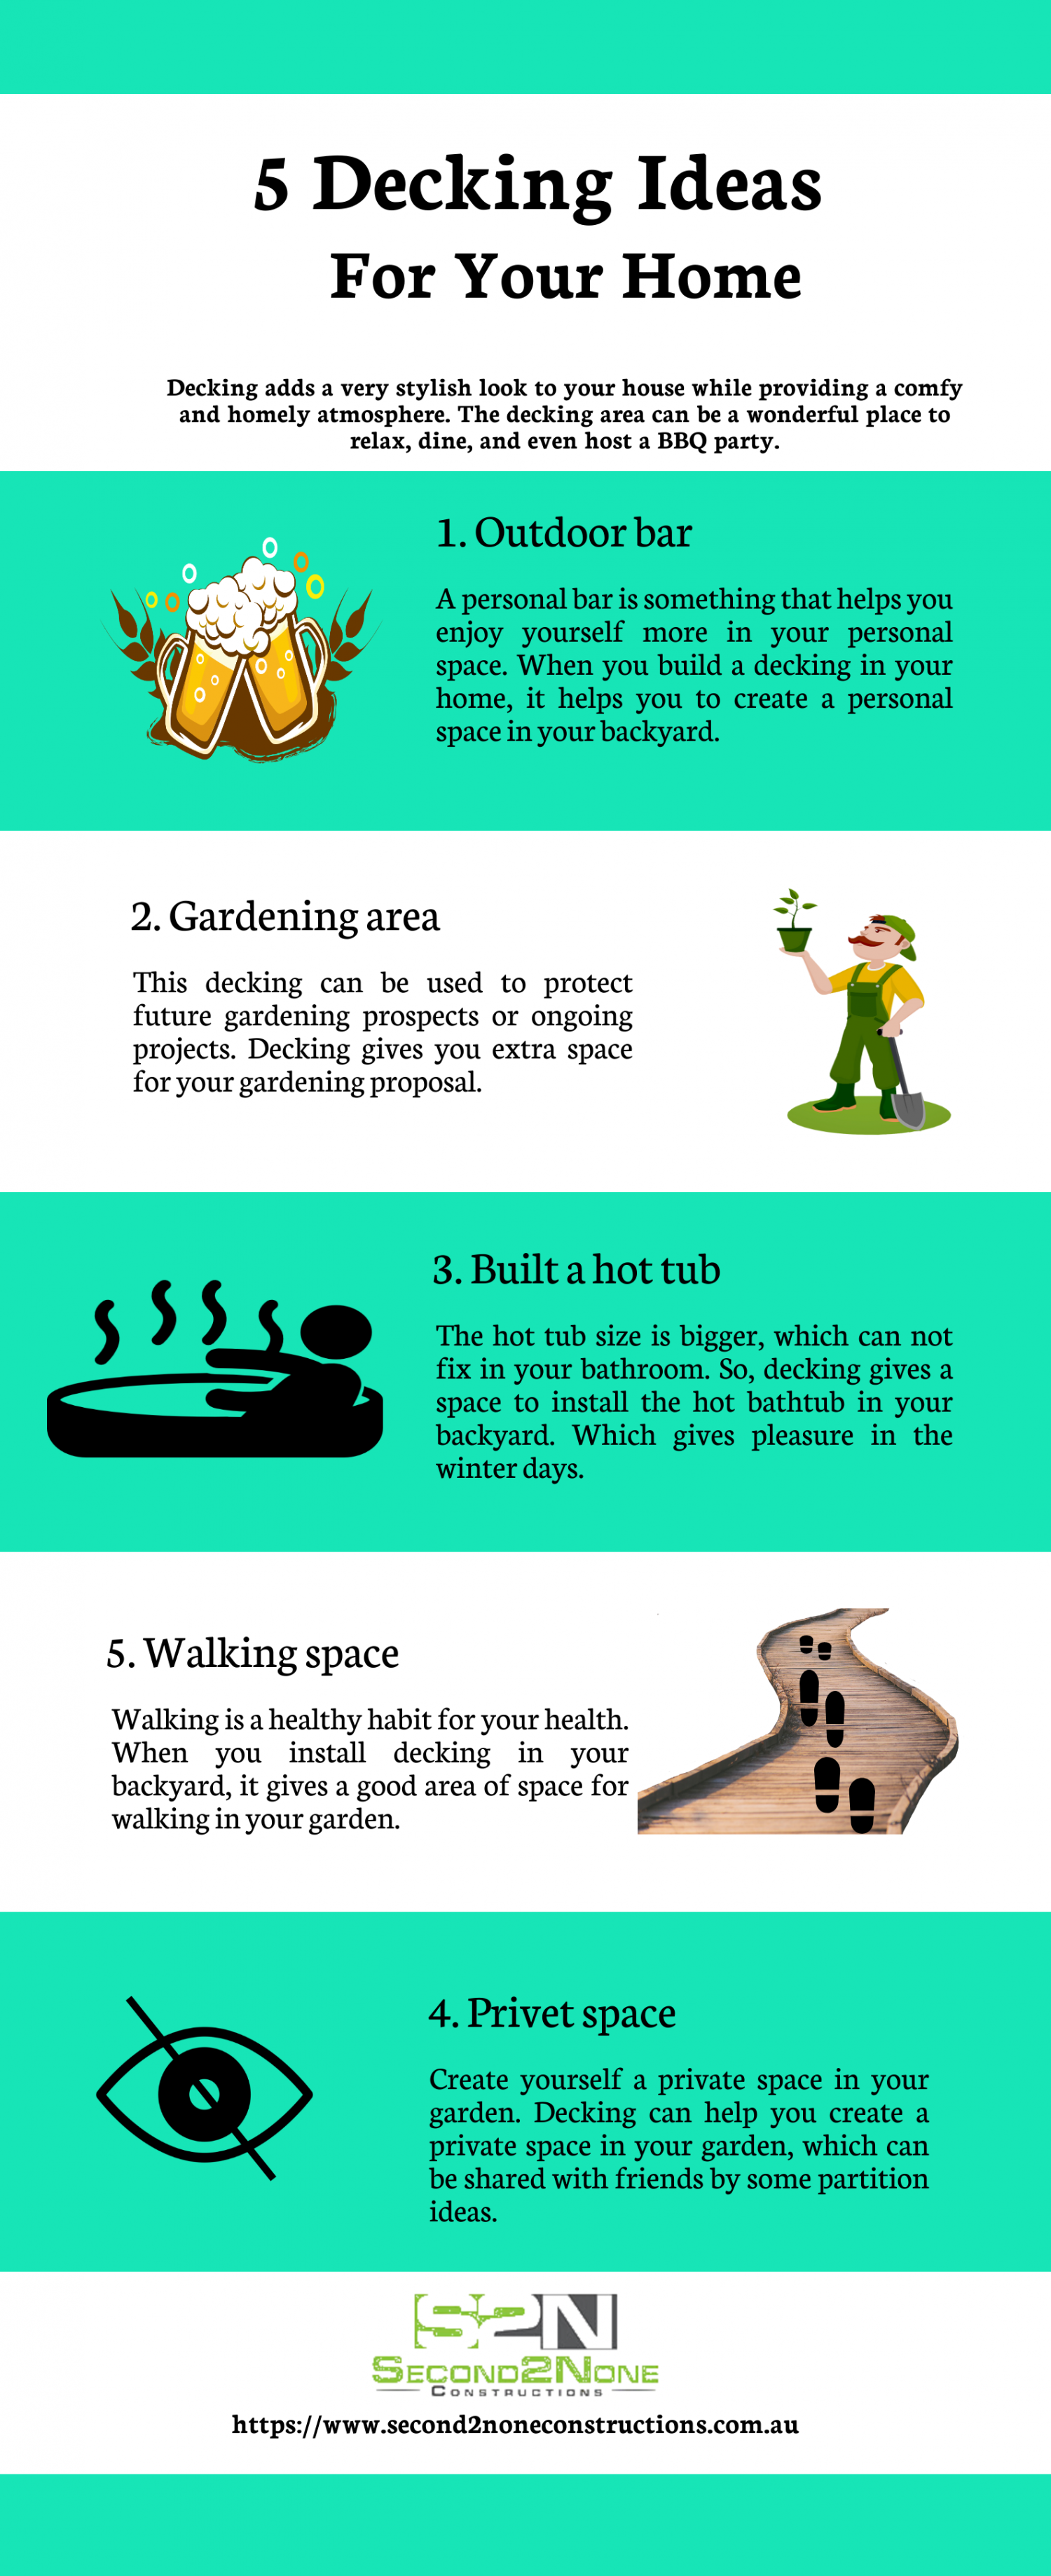 5 Decking Ideas For Your Home Infographic